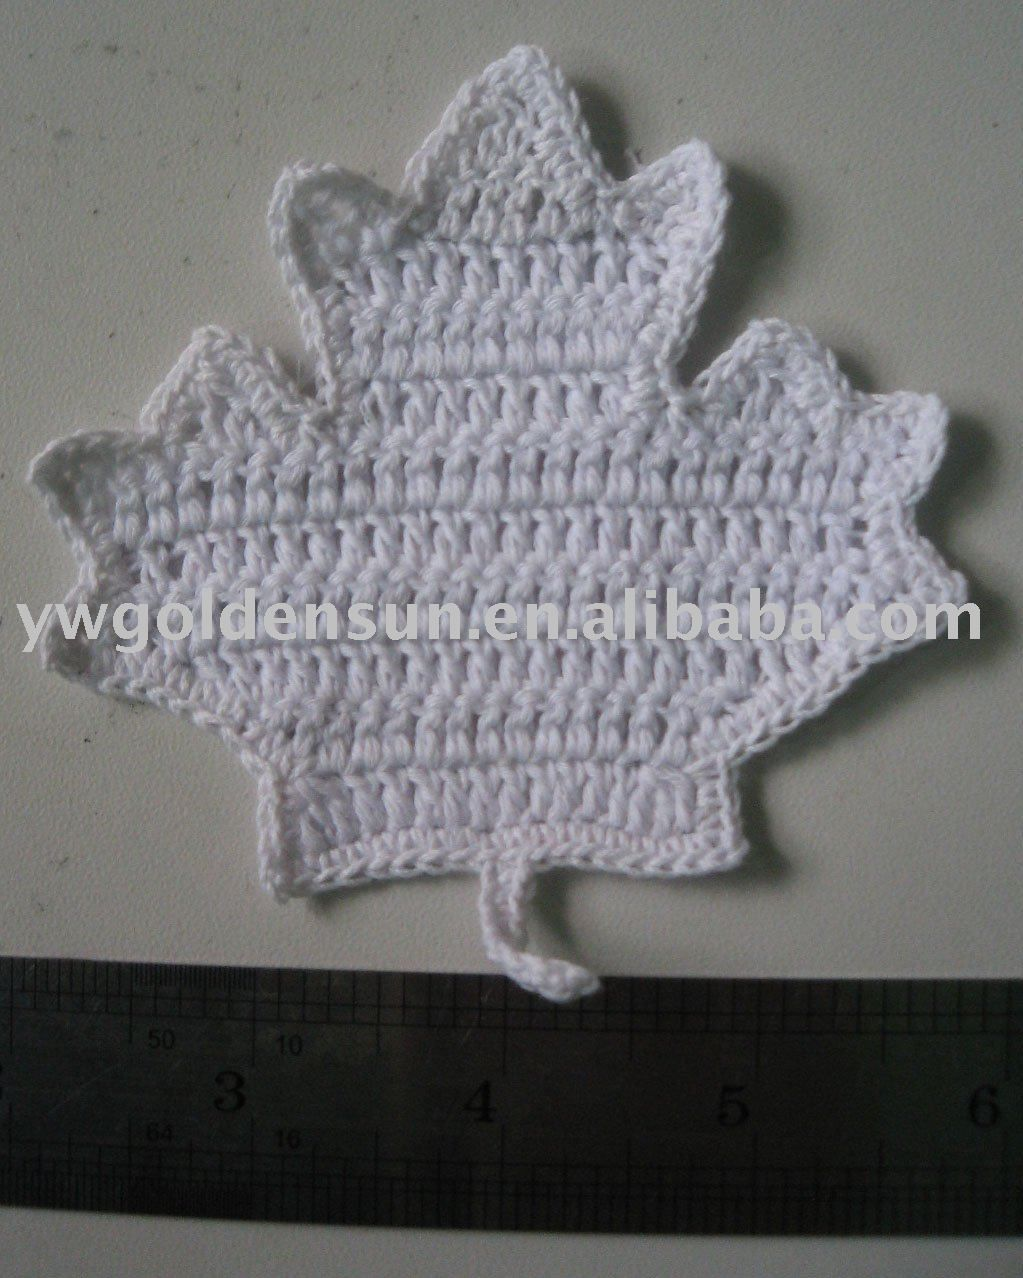 Free Maple Leaf Potholder Crochet Pattern | Crochet housewares ...